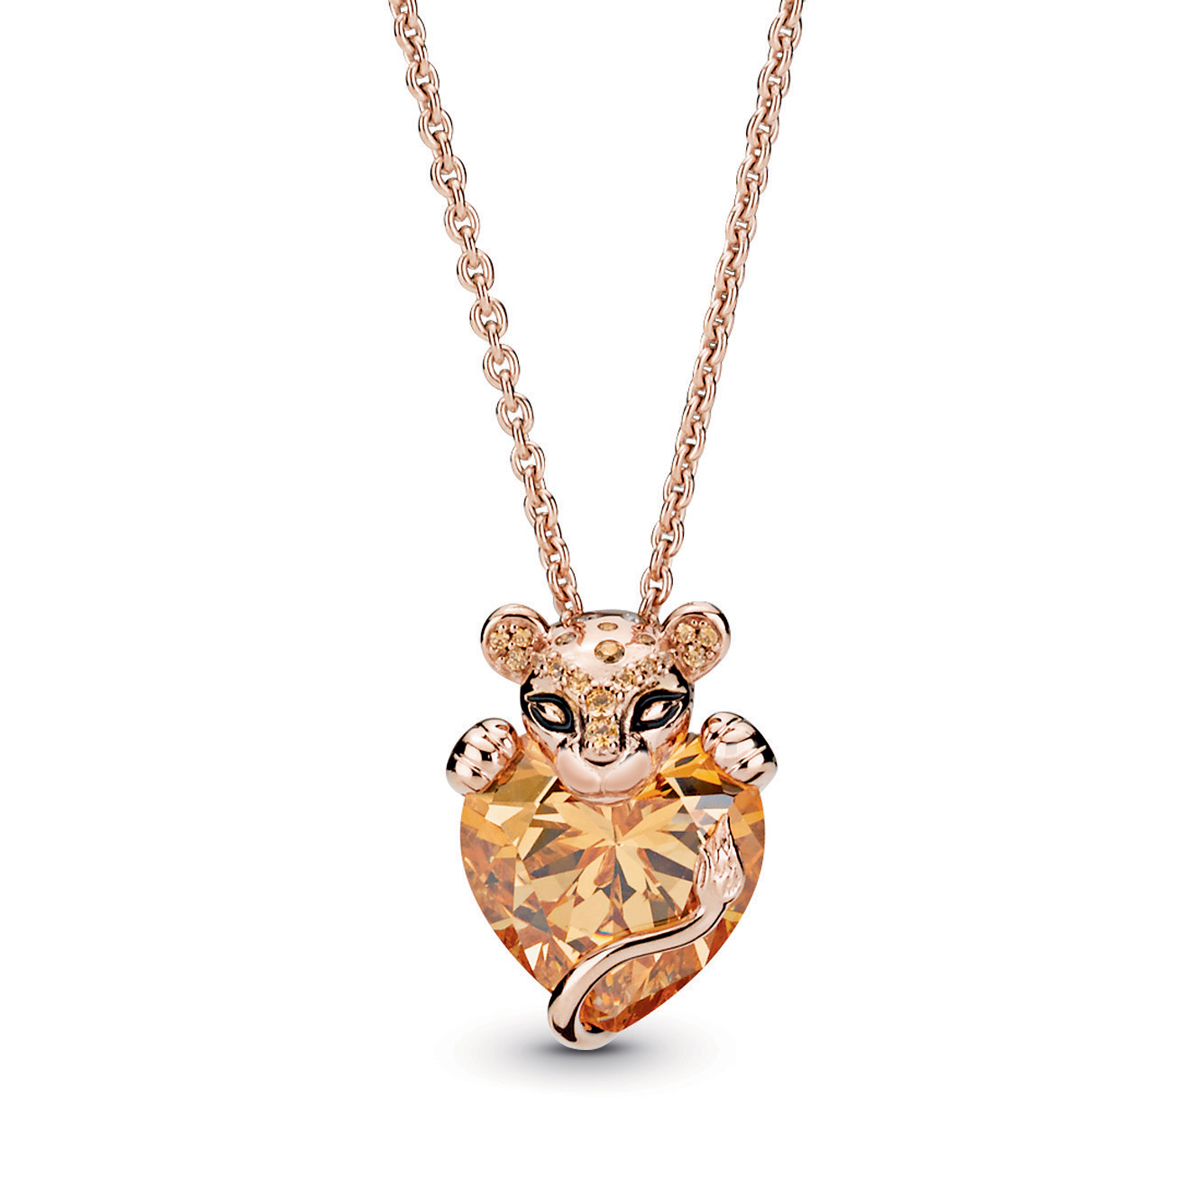 2c8534538 Pandora Rose™ Sparkling Lion Princess Heart Necklace 388068CZM-60 ...